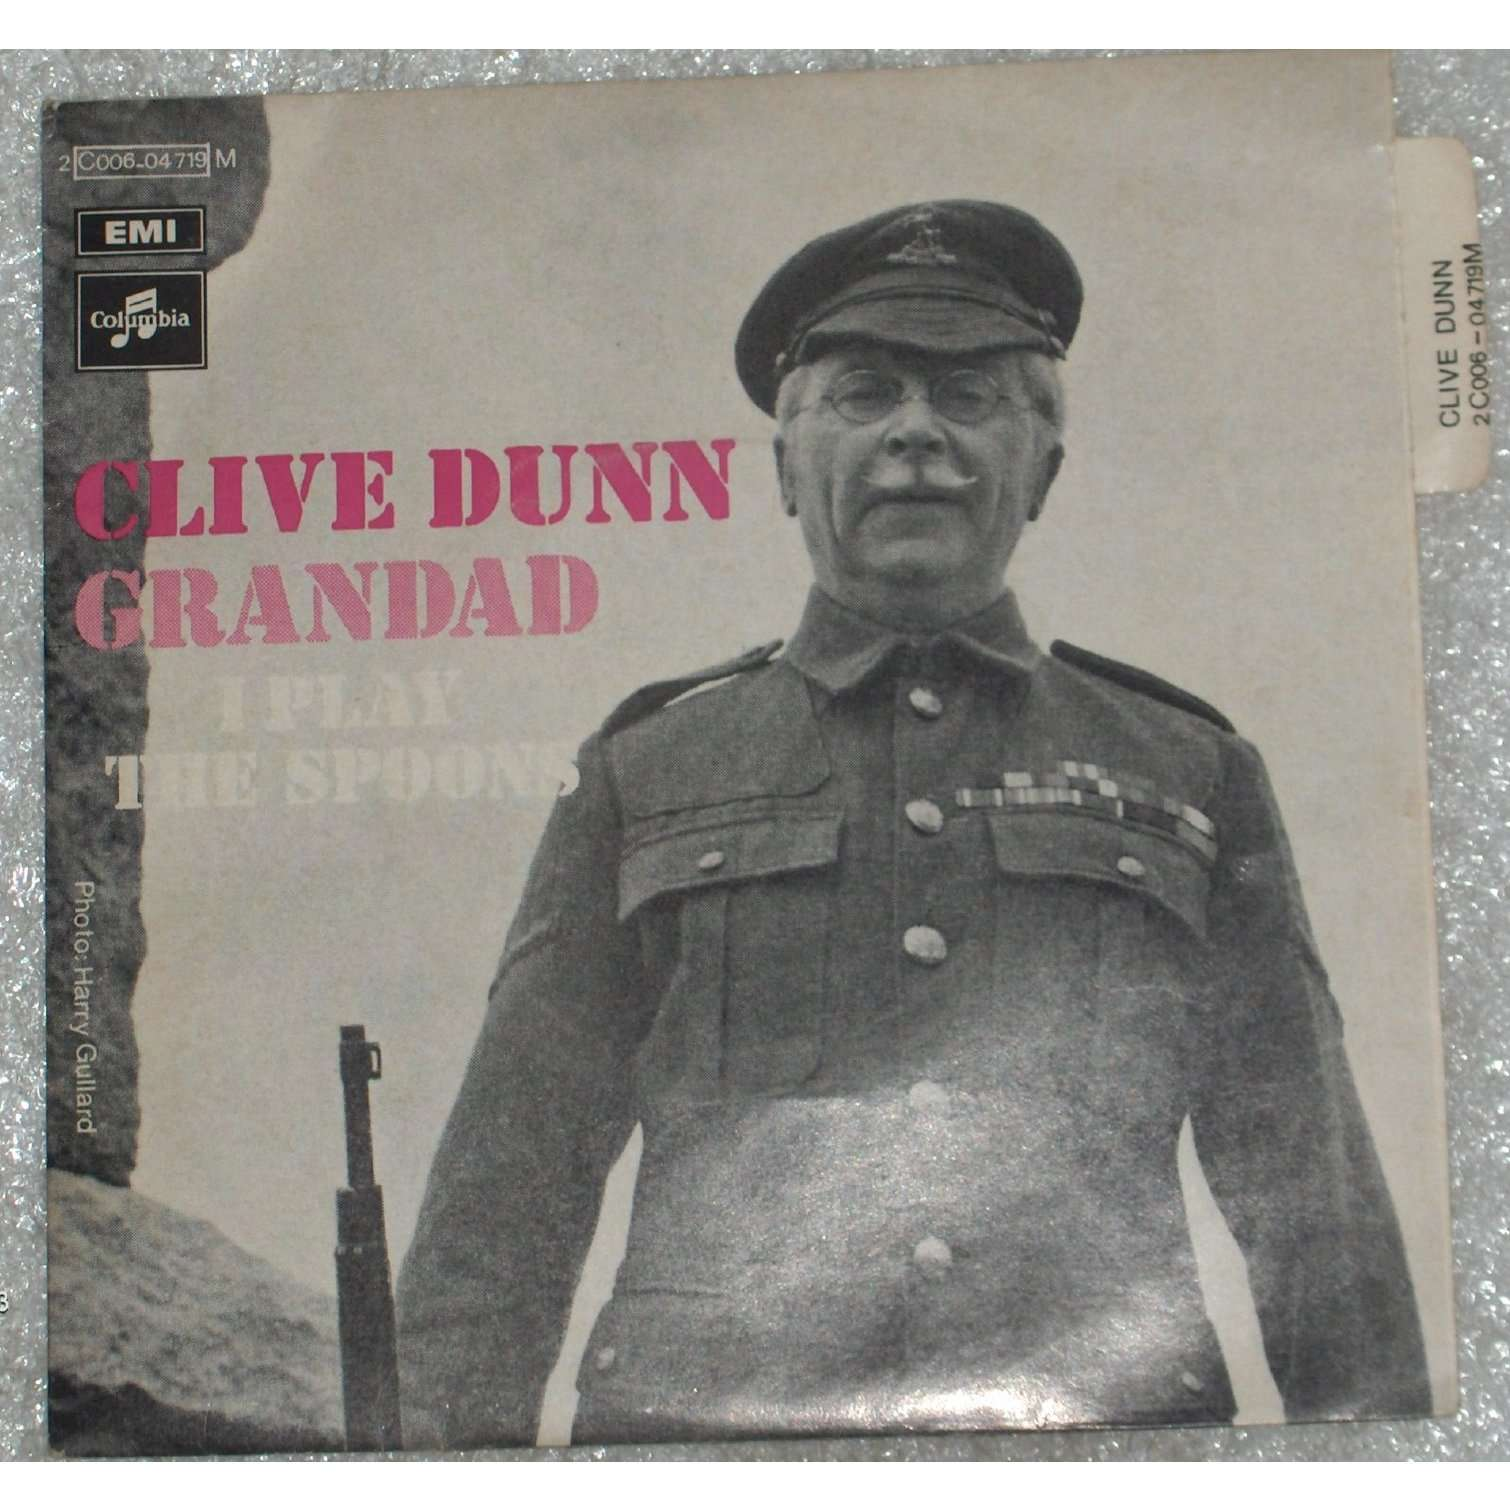 Clive Dunn Grandad 7inch Sp For Sale On Cdandlp Com